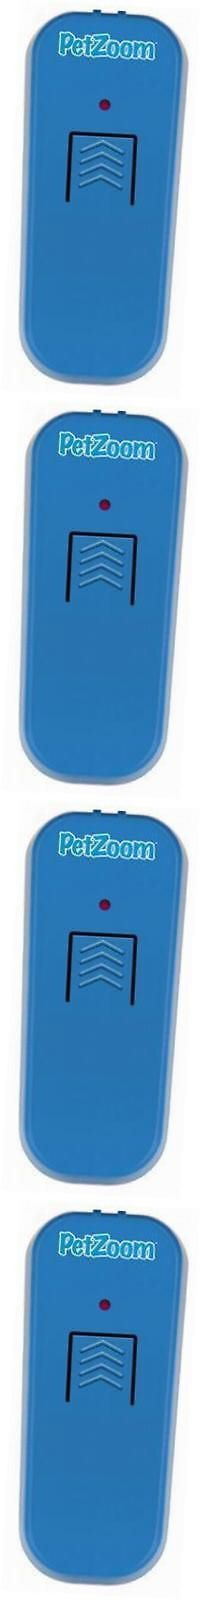 Sonic Trainers 146244: Pet Zoom Pet Trainer -> BUY IT NOW ONLY: $44.04 on eBay!